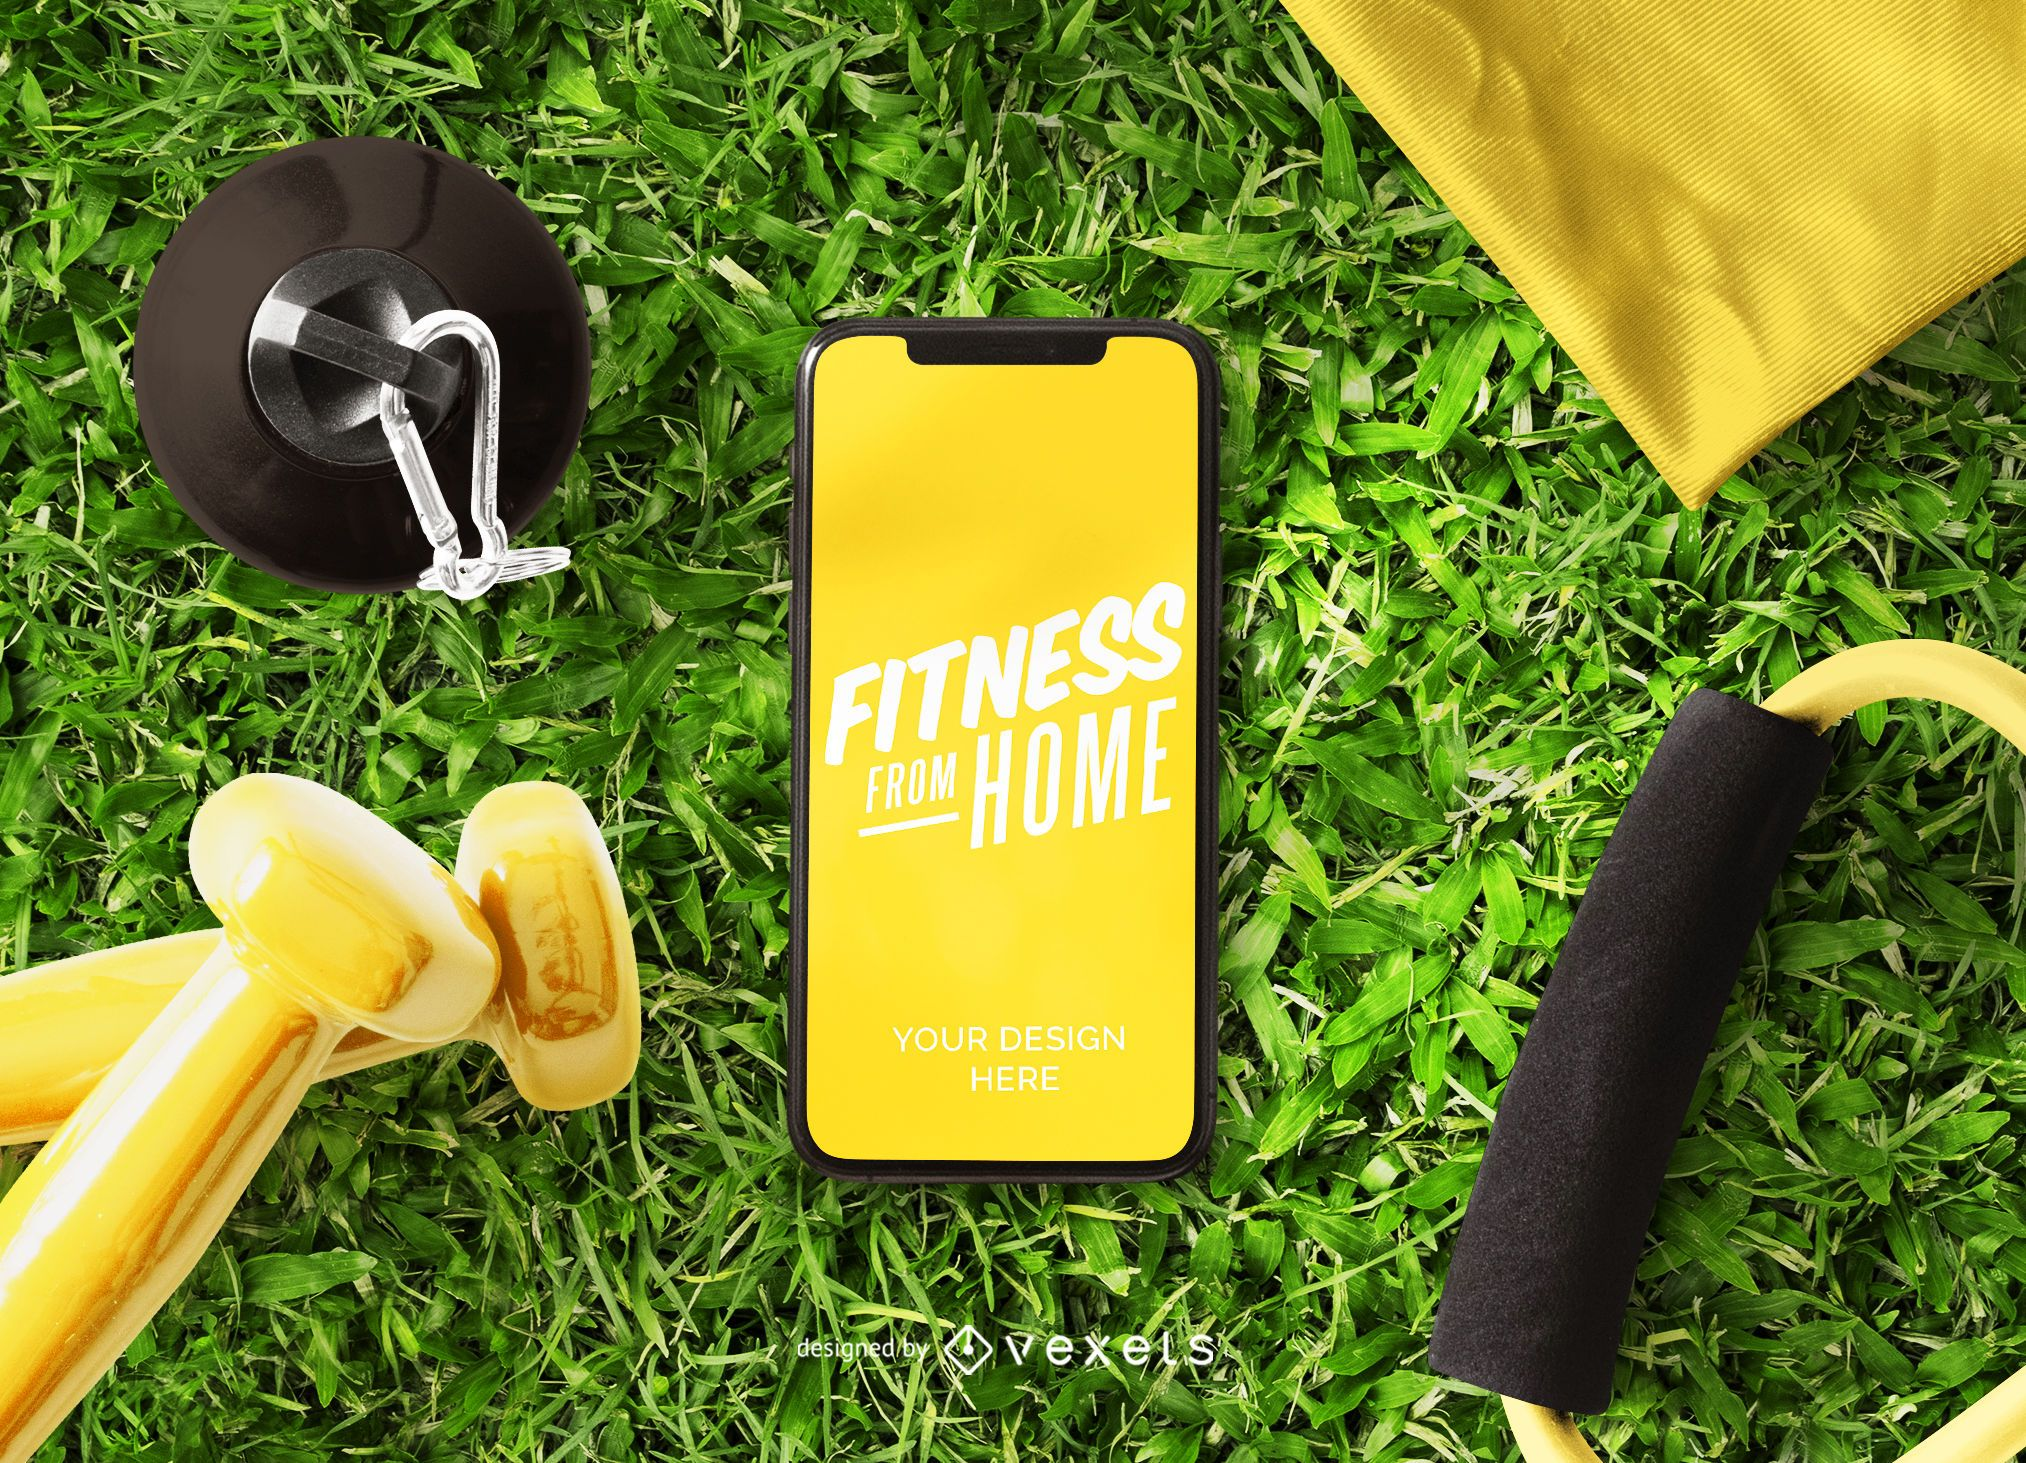 Fitness from home phone mockup design